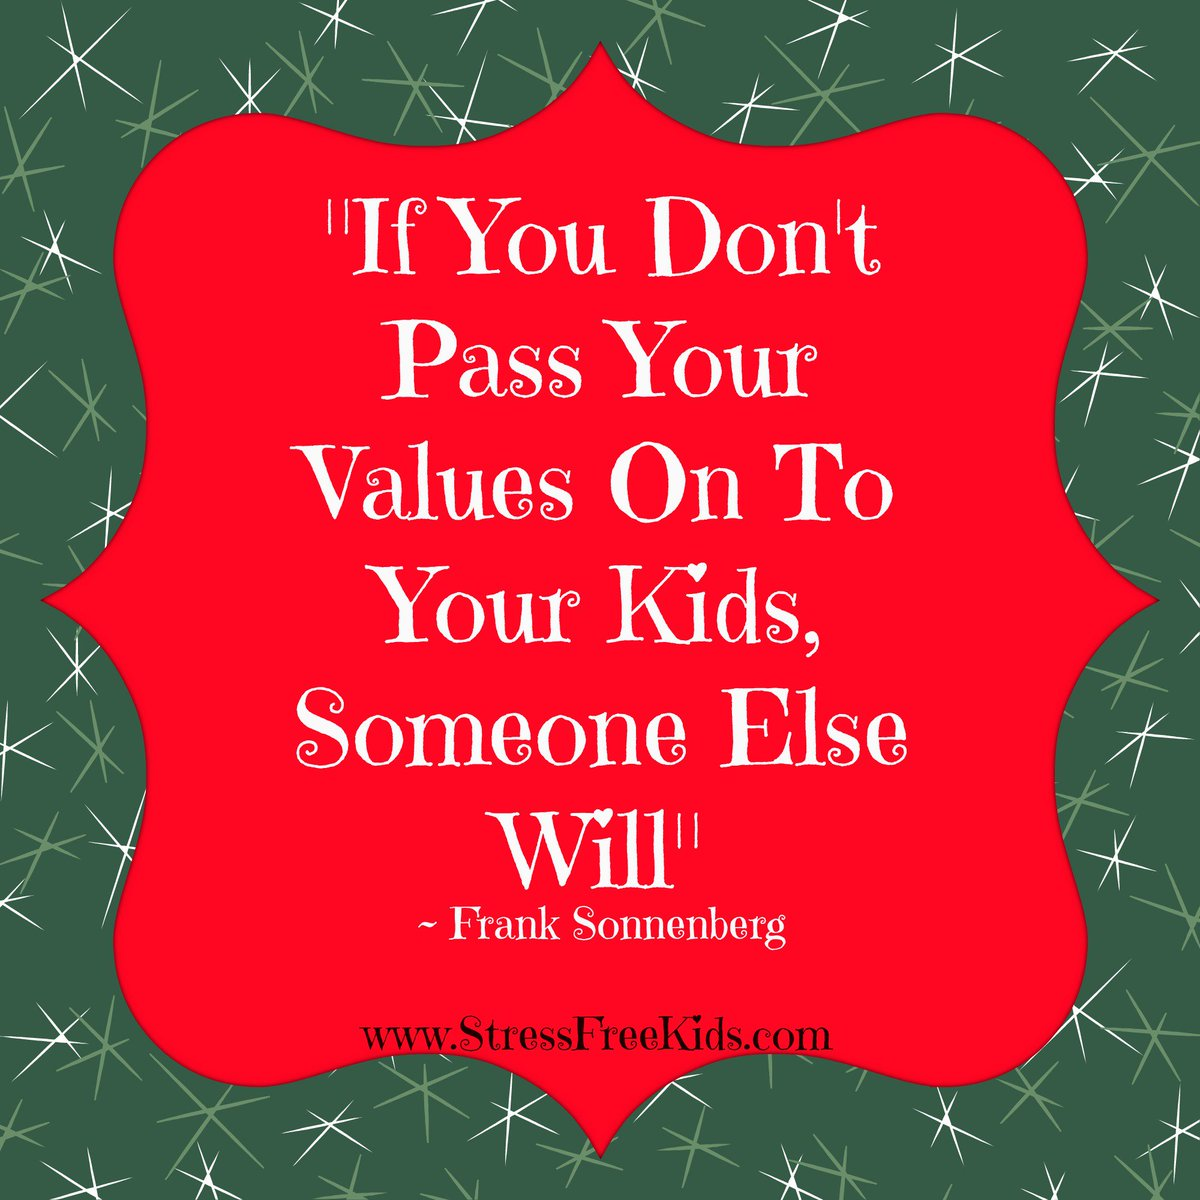 If you don't pass your values on to your kids, someone else will. - Frank Sonnenberg #JoyTrain https://t.co/ZLXagKvnWq